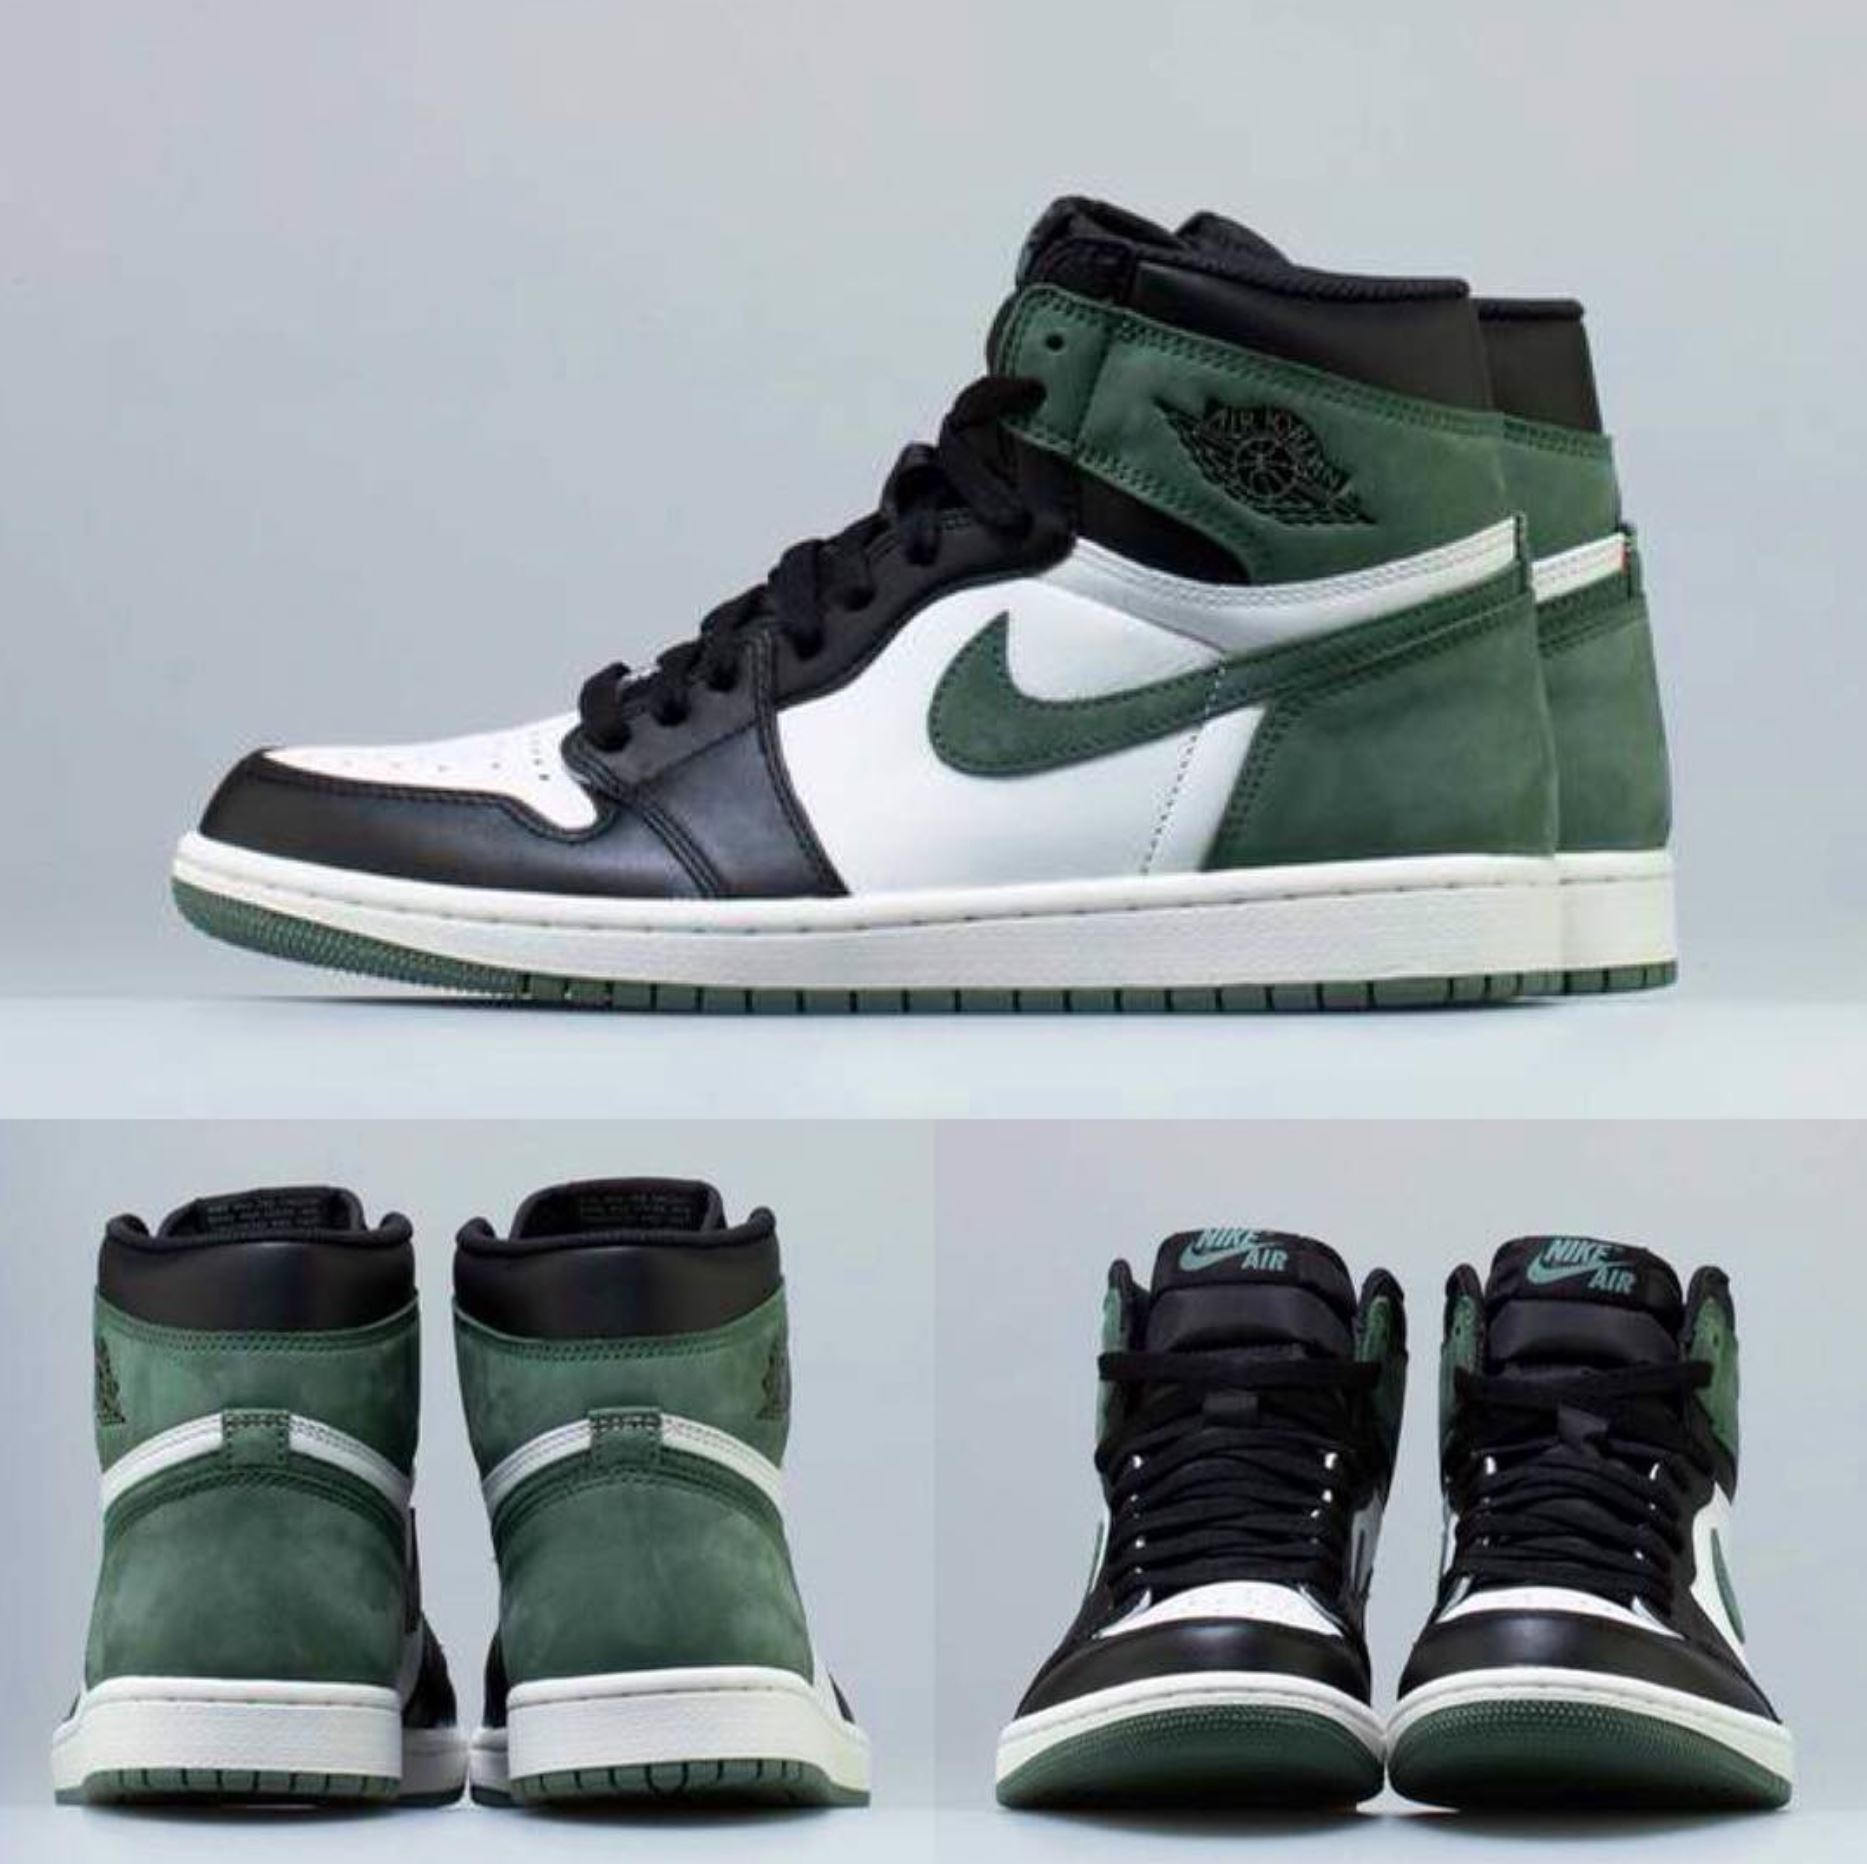 quality design 02f72 45718 The Air Jordan 1 'Clay Green' Will Arrive for May - WearTesters